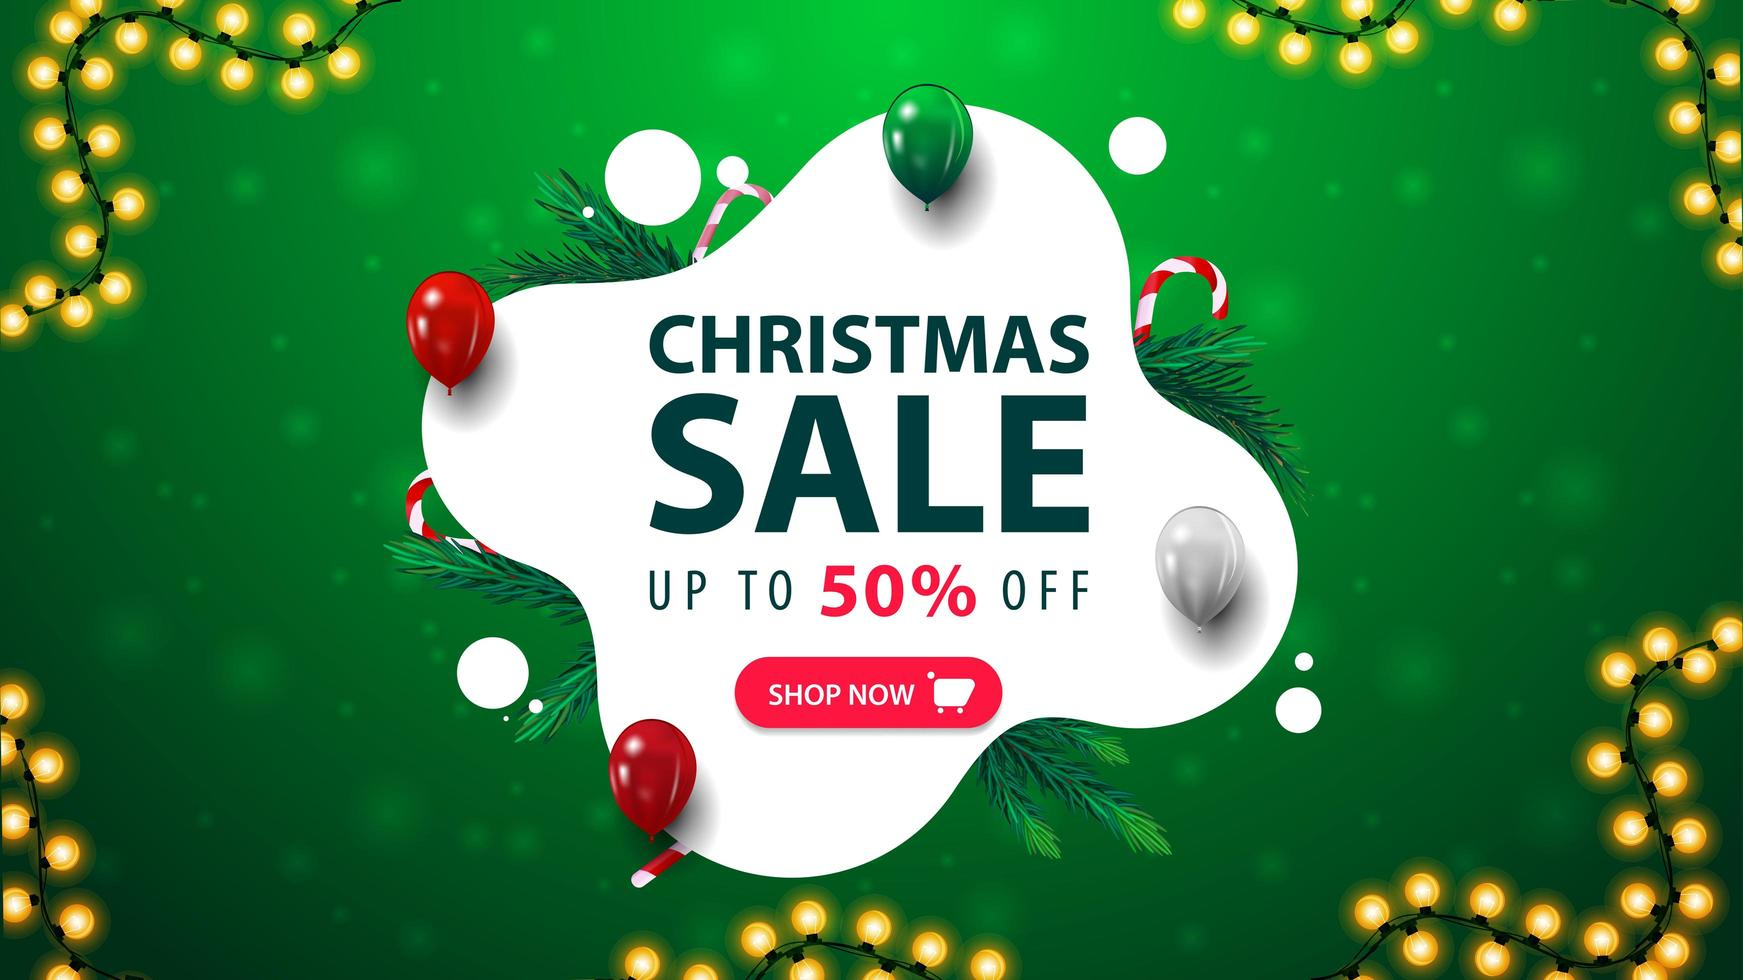 Christmas sale, green and white discount banner in liquid abstract shape with balloons, candy canes, garland and button vector